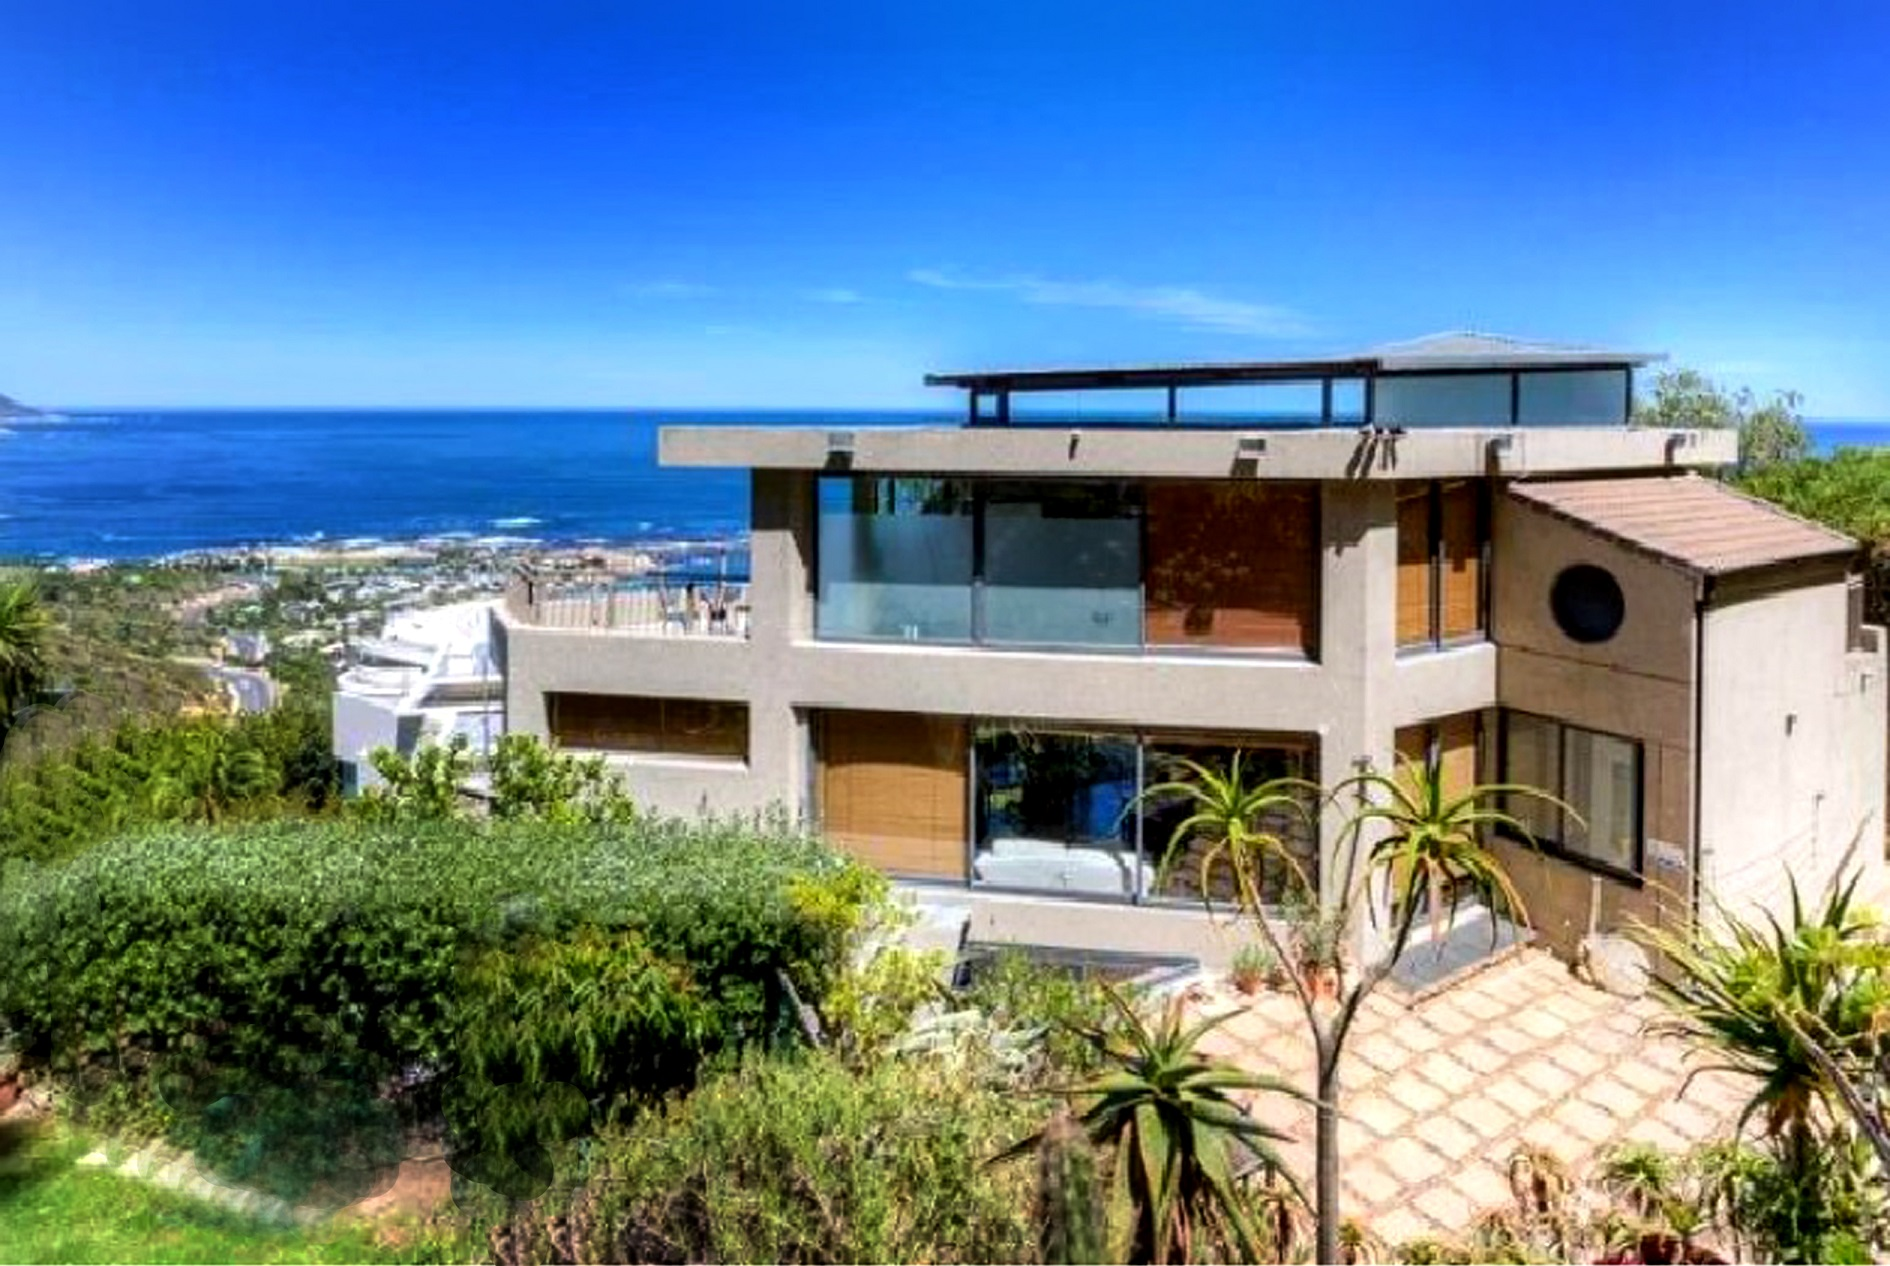 Sky-high prices prompt 'feeding frenzy' on Atlantic Seaboard